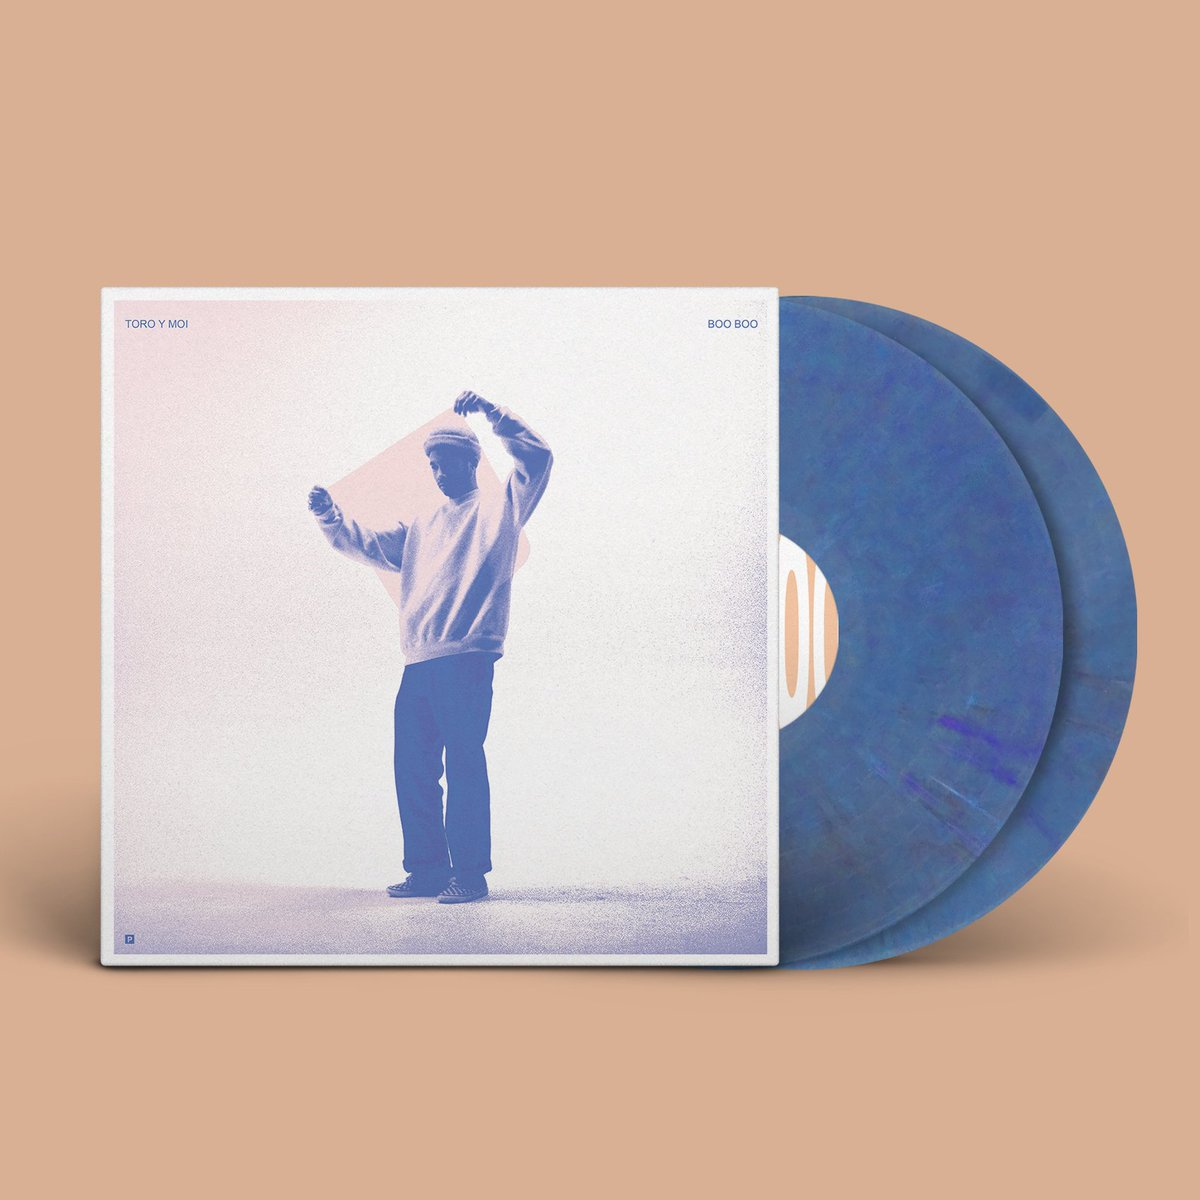 """boo boo"" out 7.7.17 @ToroyMoi  https://t.co/z5HcnsLwEI https://t.co/rUWiWP8si6"